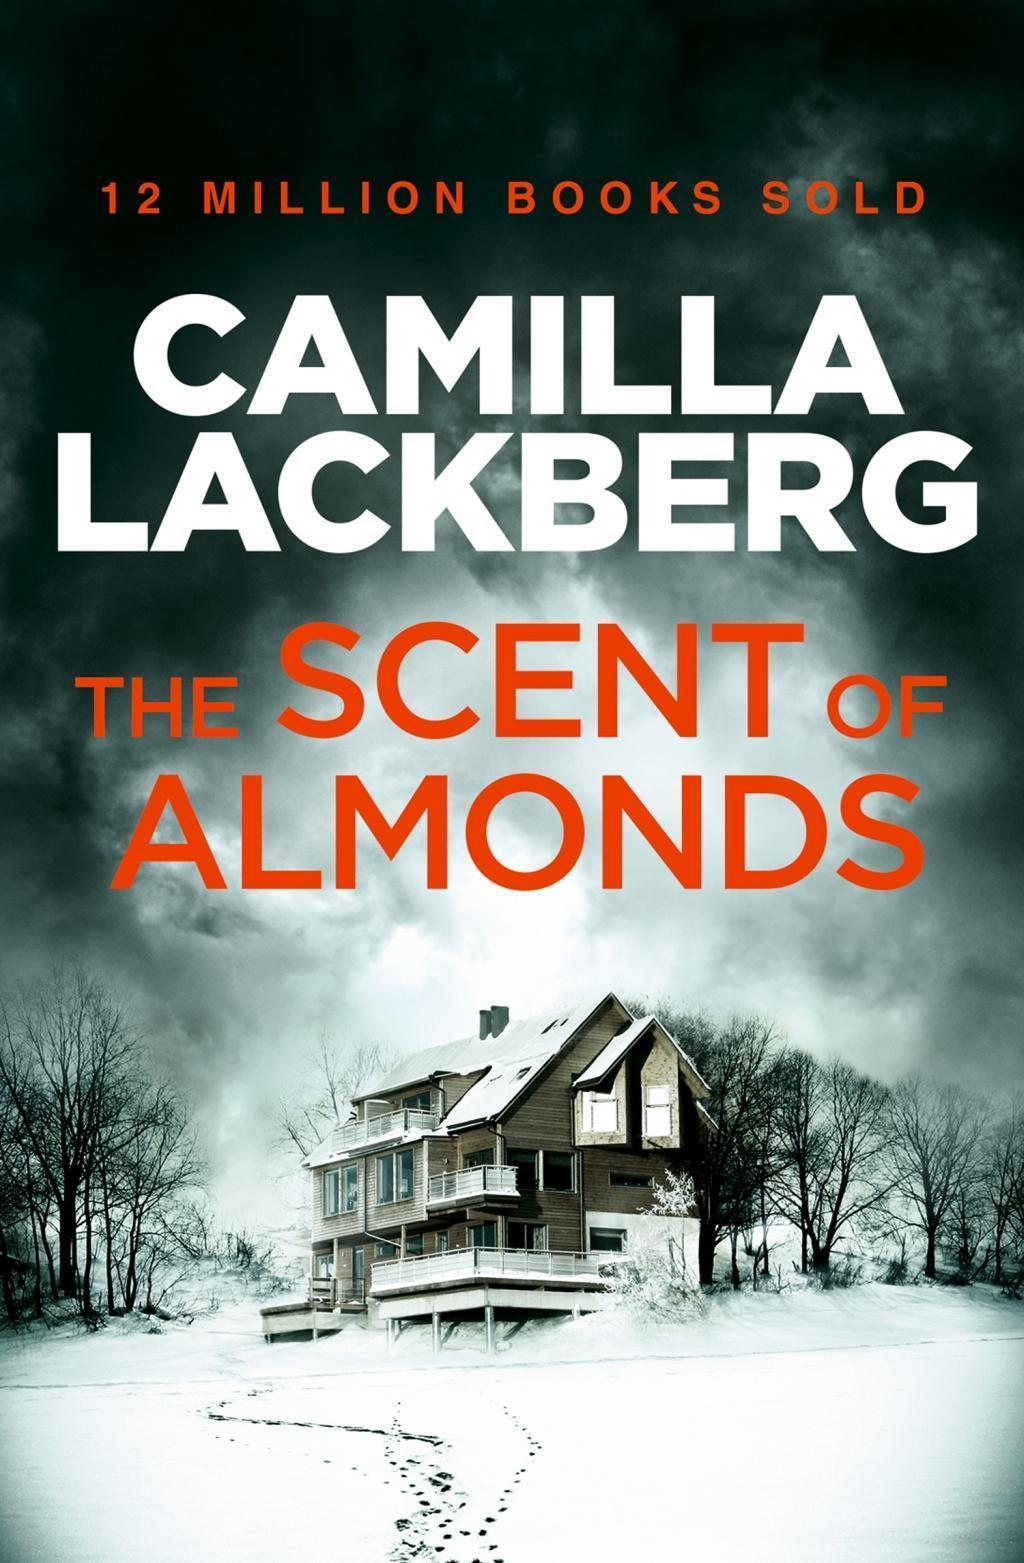 The Scent of Almonds: A Novella